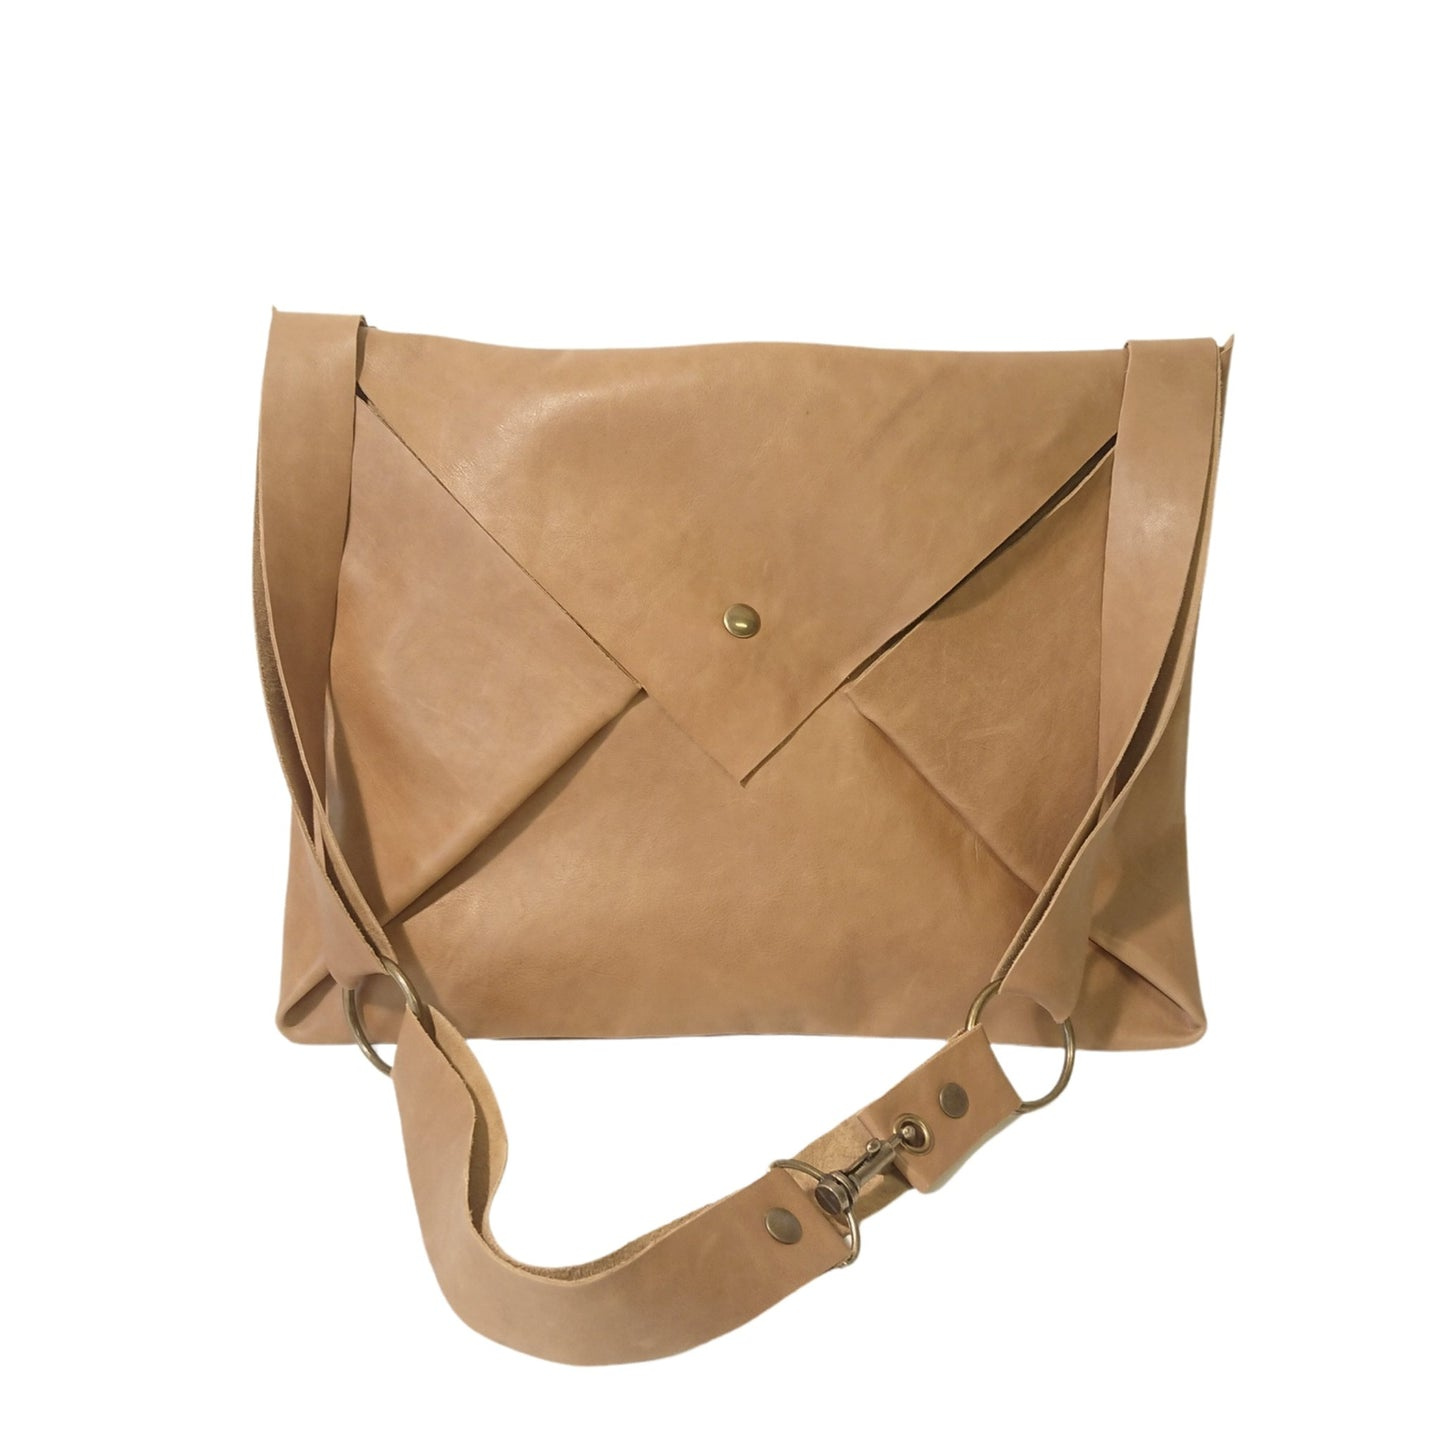 Sac Post Cuir Wild Soft Camel-Nada Bags Paris